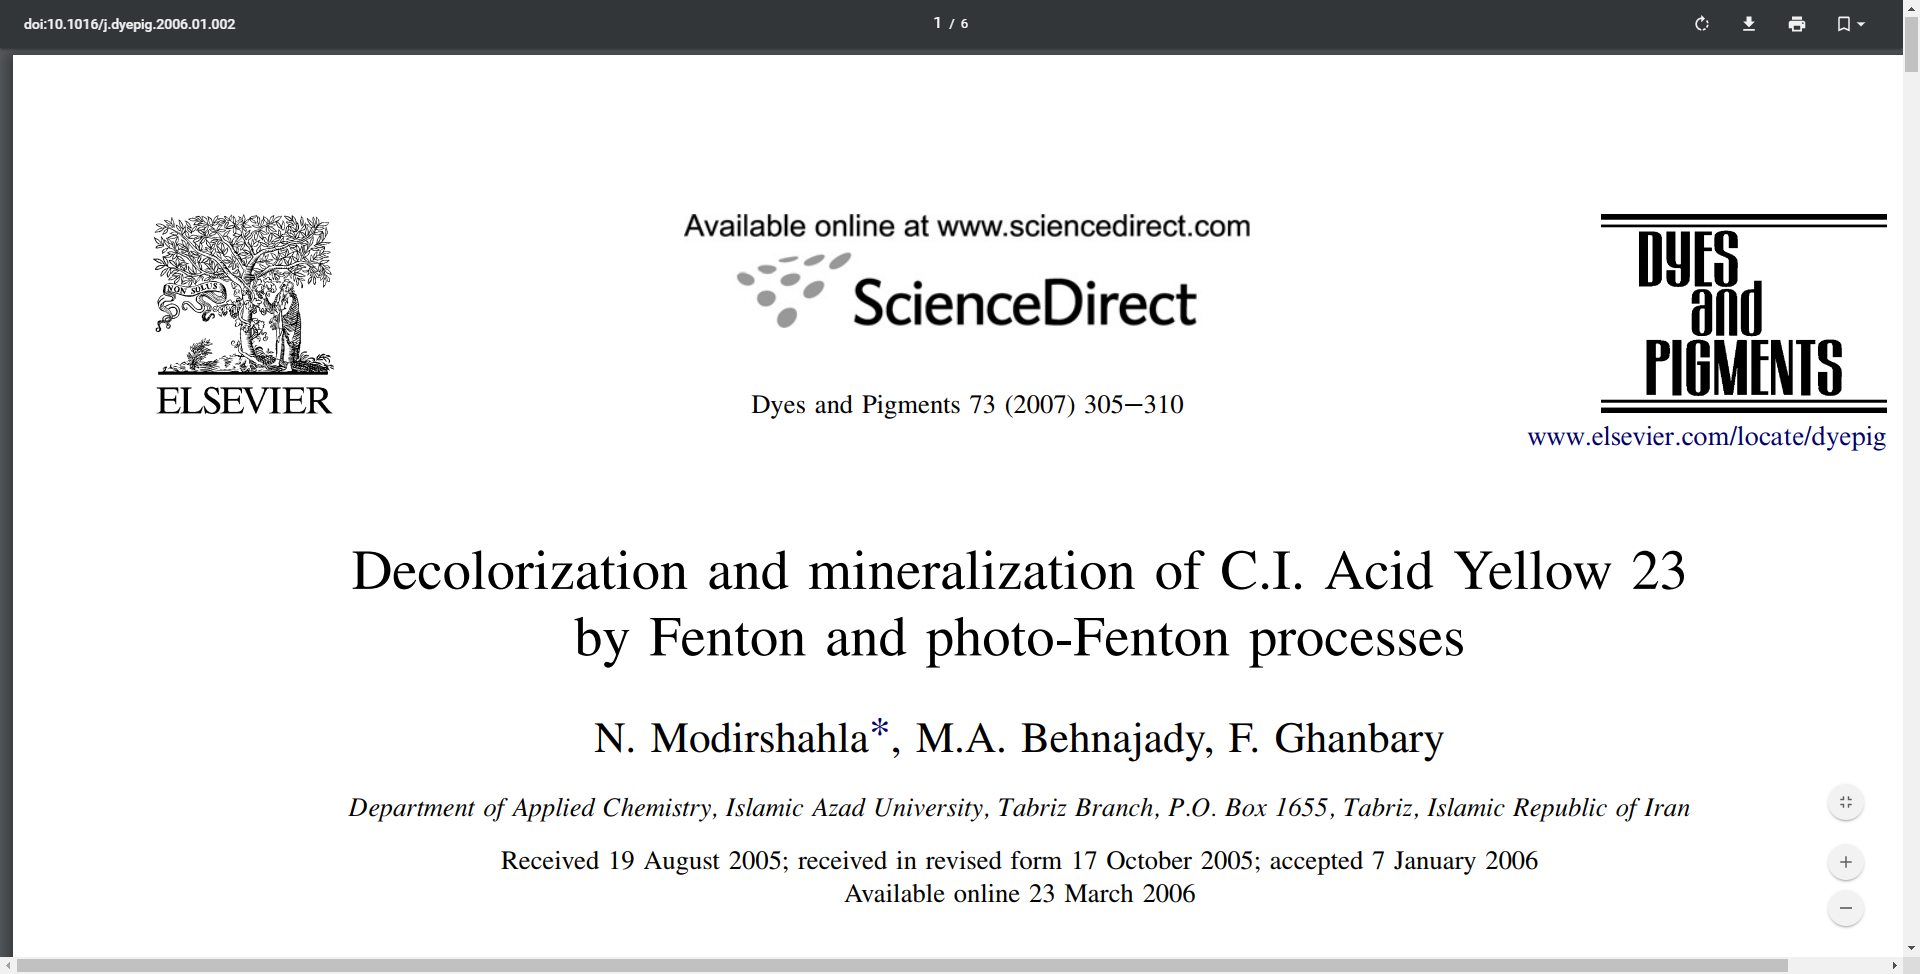 Decolorization and mineralization of C.I